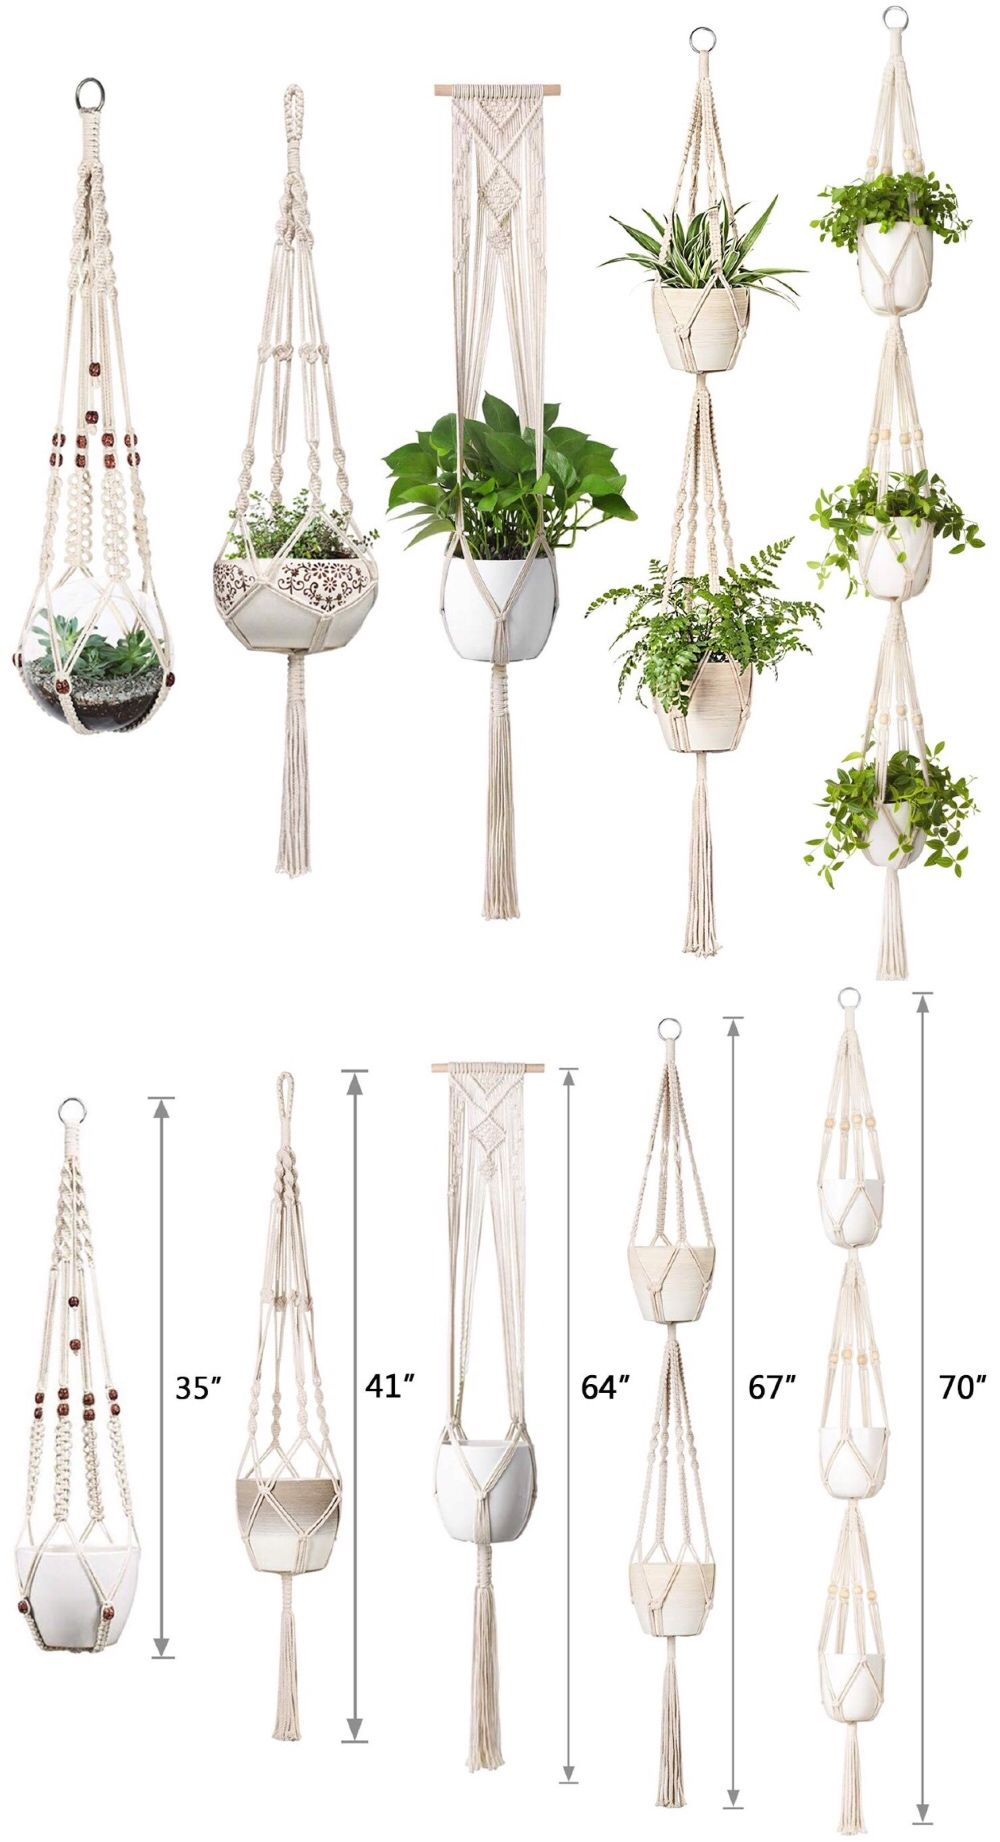 "4 Pack Macrame Plant Hangers Set, Hanging Rope Planter for Indoor Flowers,Set of 4 Plant Macrame Hangers, Plant Hanger Macrame is part of Diy macrame plant hanger, Macrame plant hangers, Macrame plant hanger patterns, Macrame plant holder, Plant hanger, Diy plant hanger - 67"" ▪️Pot • Fit most shapes & sizes of pot, ideal for 6""8"" in diameter   ▪️Note • Plants & pots are not included ▪️Occasion • Balcony,livingroom,pathways,window,hallway,office ▪️Interesting way to display your lovely plants ▪️Keep plants off the ground & away from your pet's reach ▪️Bring boho chic vibe & vintage 1970s home decor element to your home ▪️Versatile style save more space ▪️Easy to hang up with hooks ▪️Create greenery home and build urban jungle ▪️Allow to show plants wherever you want ▪️Perfect gifts for plant ladies & plant lovers Check out now to get these gorgeous macrame plant hangers for your lovely plants ! 12 days shipped out after purchased I think communication is a great tool, please feel free to contact me with any inquiries,I'd be happy to address any issues ! macrame plant hanger,hanging plant indoor, macrame planter, boho plant holder,macrame plant holder,plant hanger,rope plant holder, indoor planter,hanging plant holder,hanging plant pot,plant pot hanger,hanging indoor planter,macrame hanging pot, rope plant hanger,gardening planter,boho home decor, macrame wall hanging, macrame wall art,greenery & gardening,plant accessories"